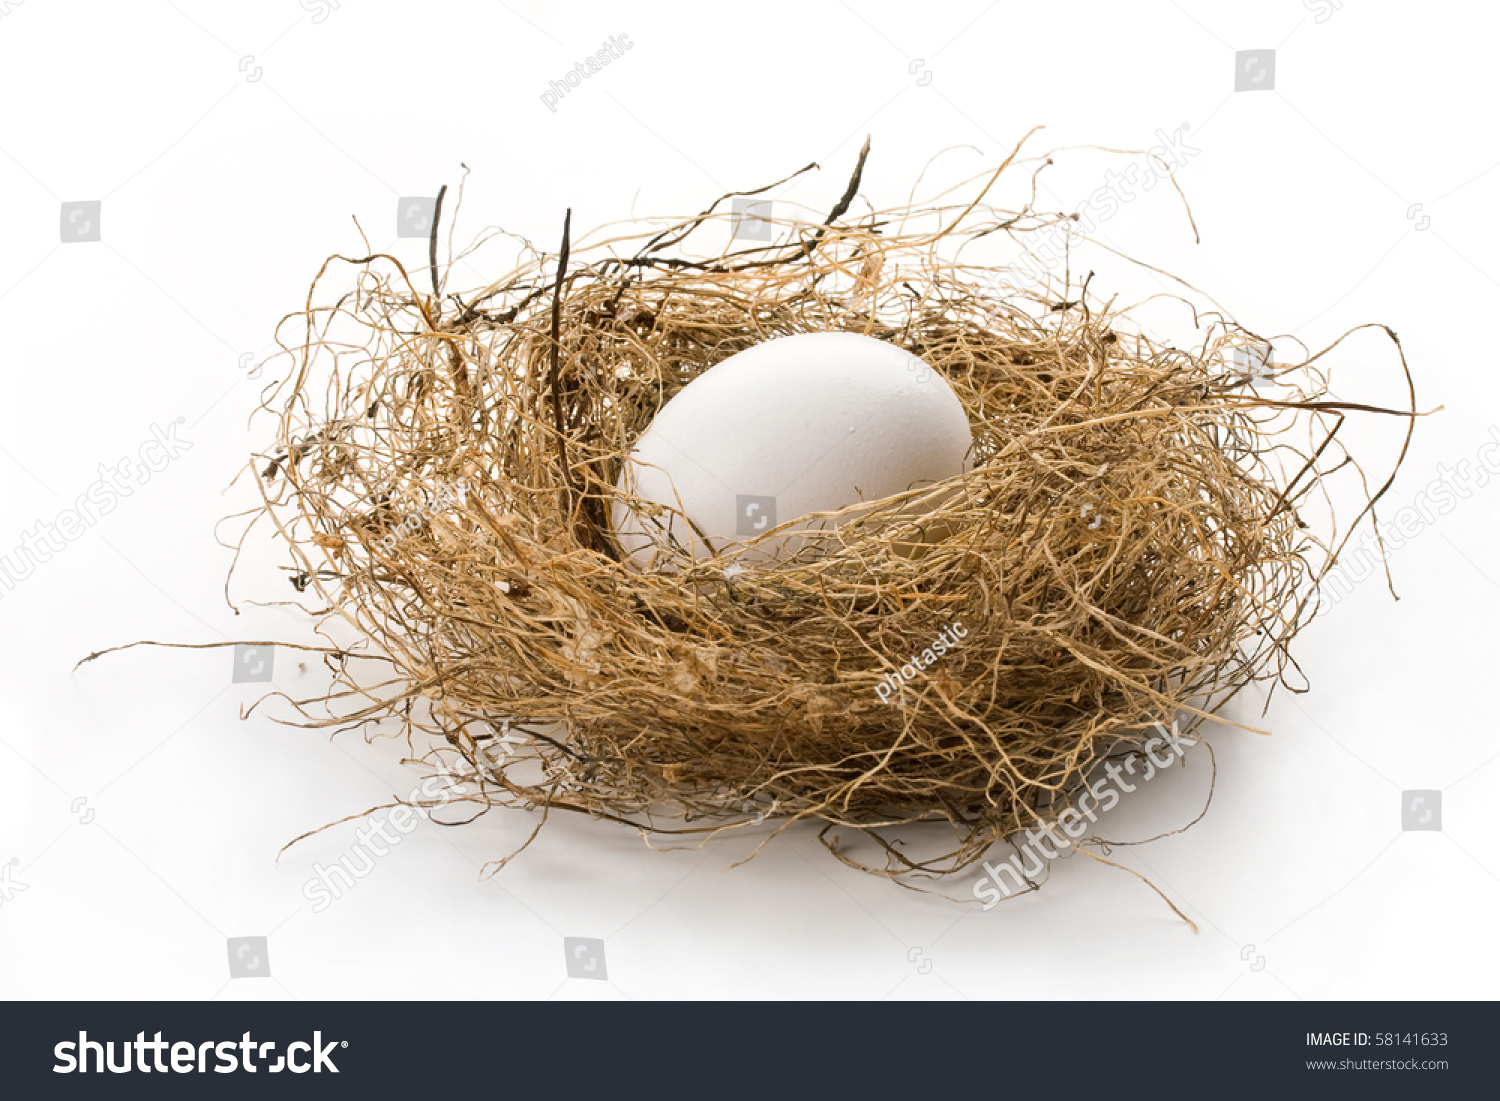 Close up of white egg laying in bird nest on white background with